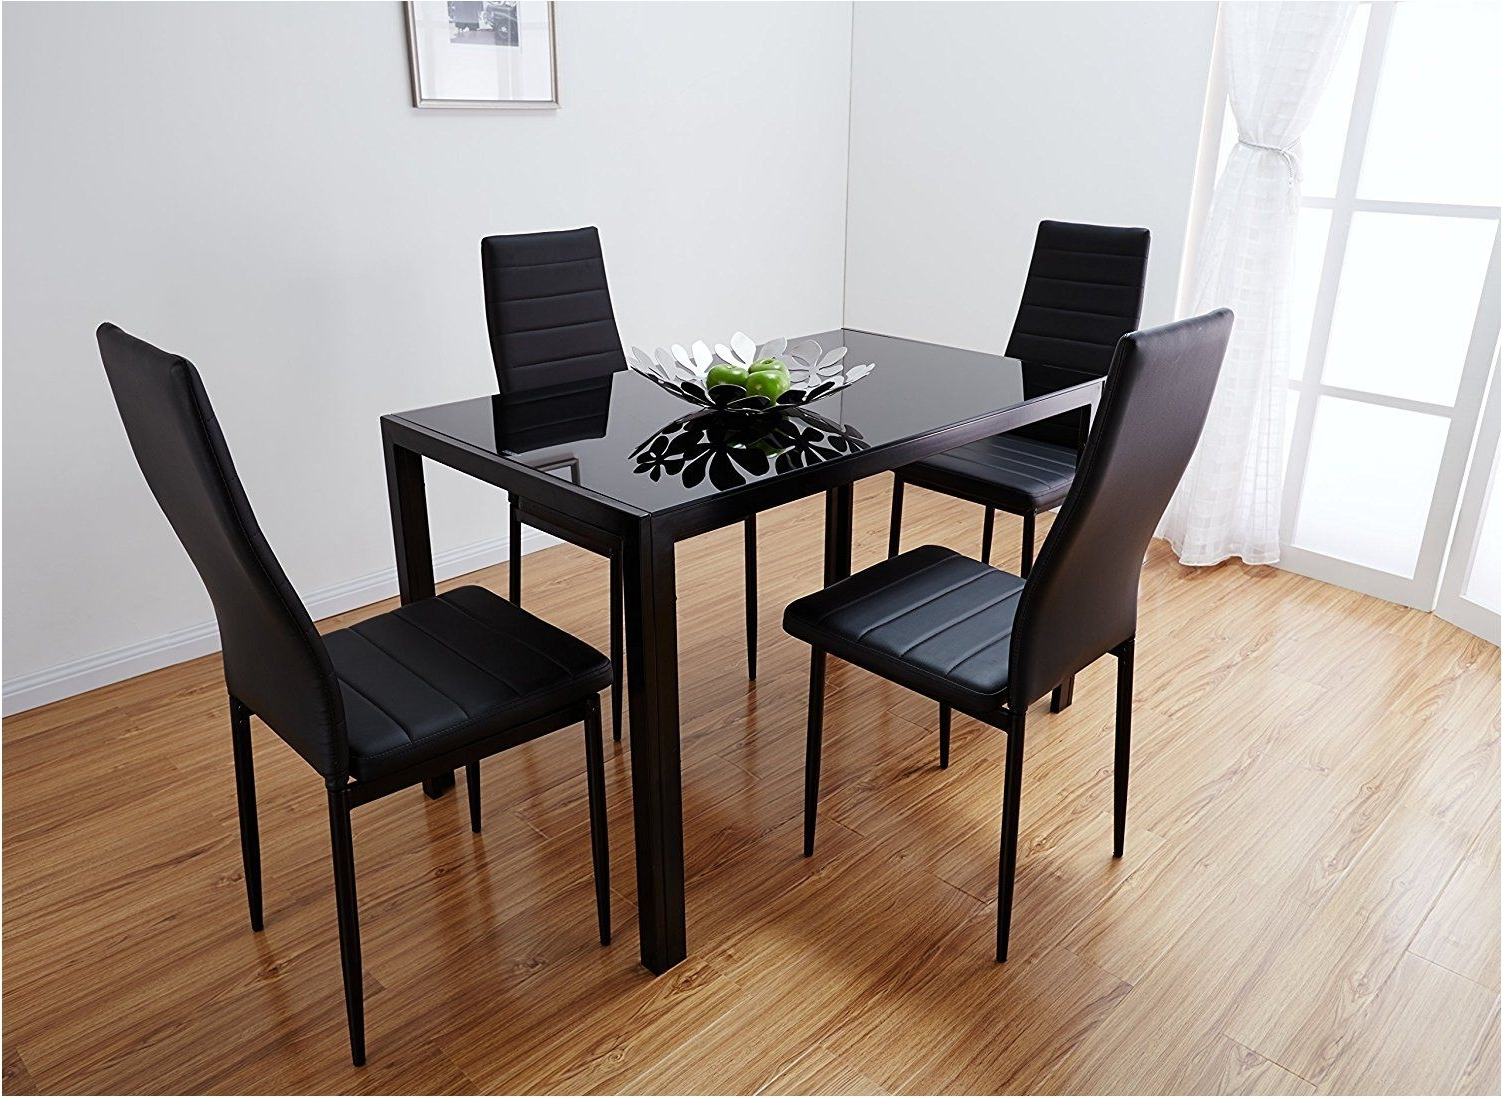 Most Up To Date Nice Black Glass Dining Table Set With 4 Faux Leather Chairs Brand Inside Black Glass Dining Tables 6 Chairs (View 14 of 25)